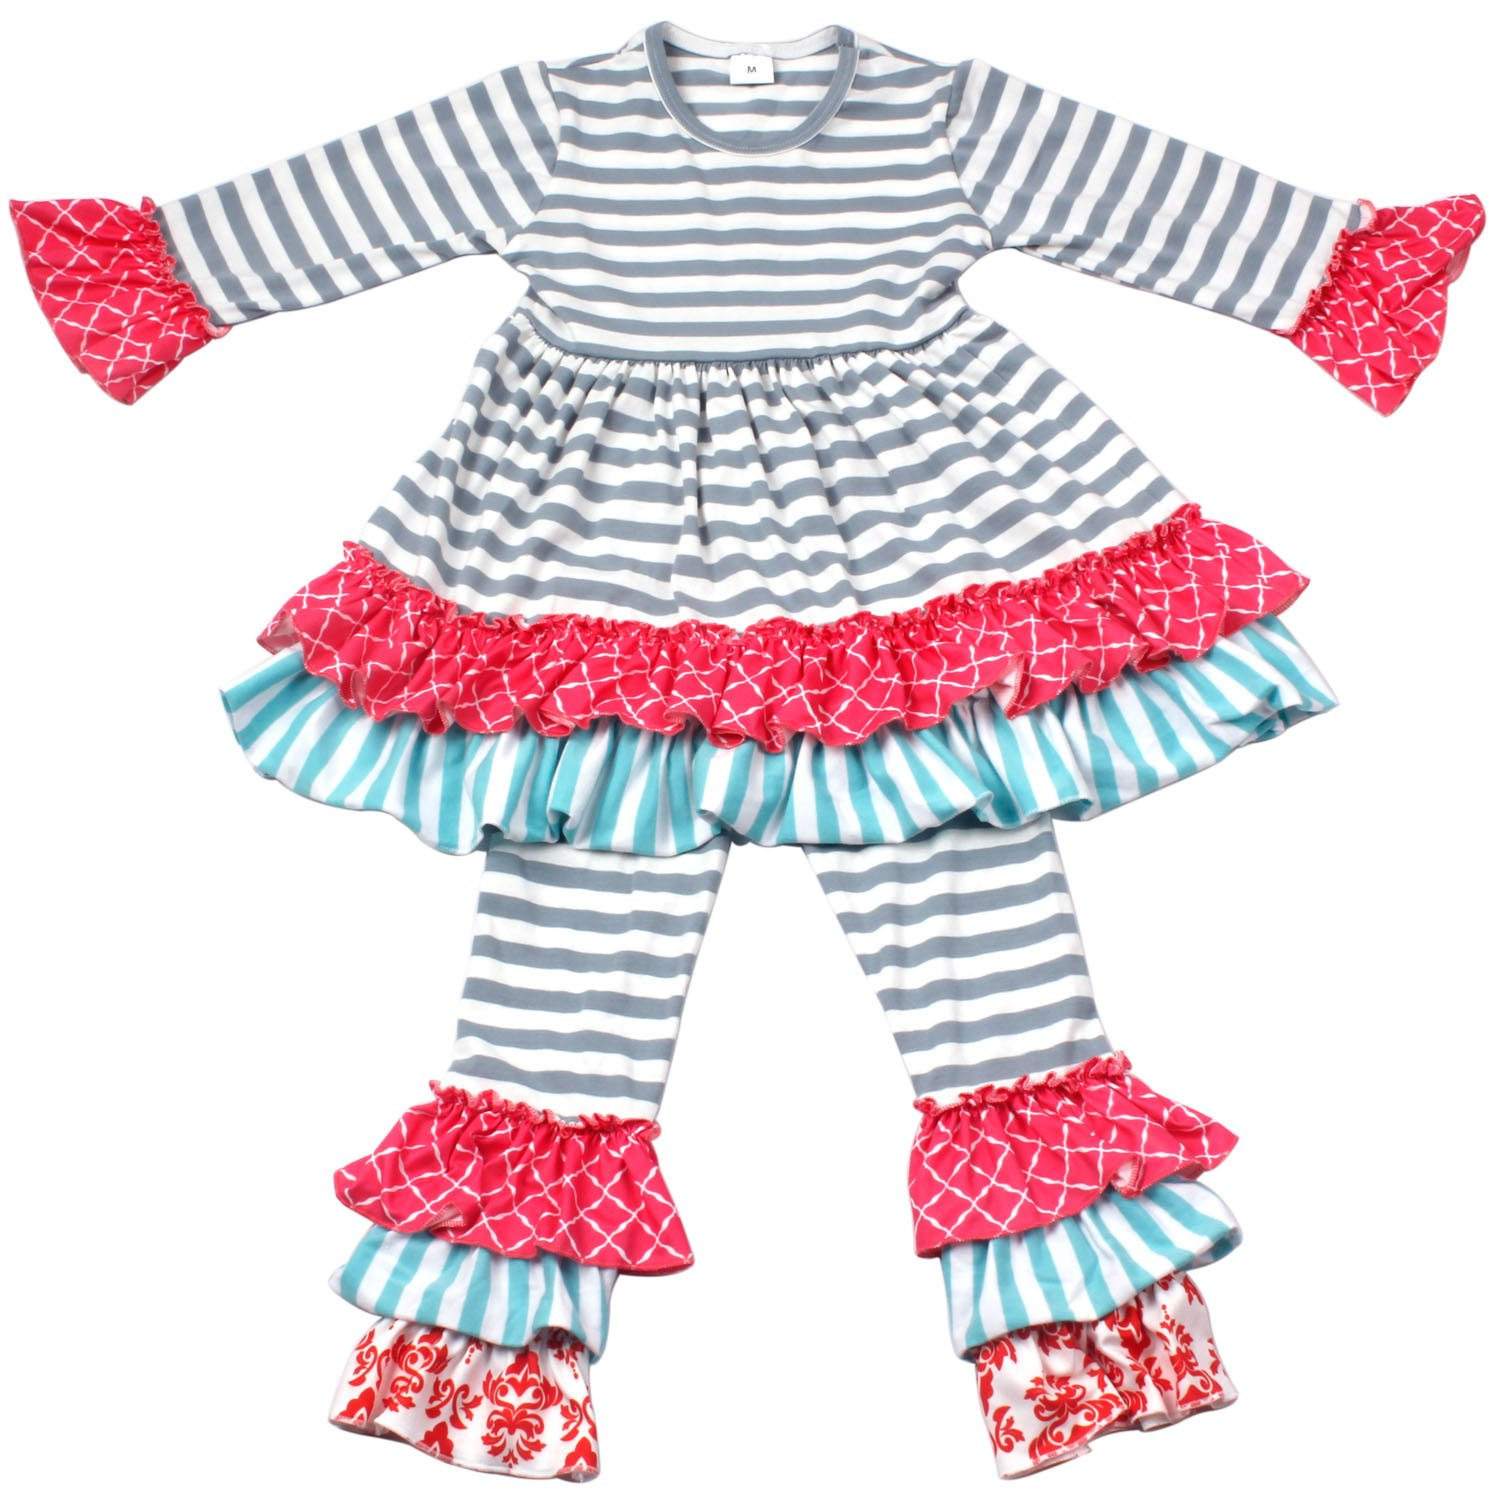 Qliyang Baby Girls Ruffle Dress Pants Holiday Clothing Outfits Kids Striped Dress